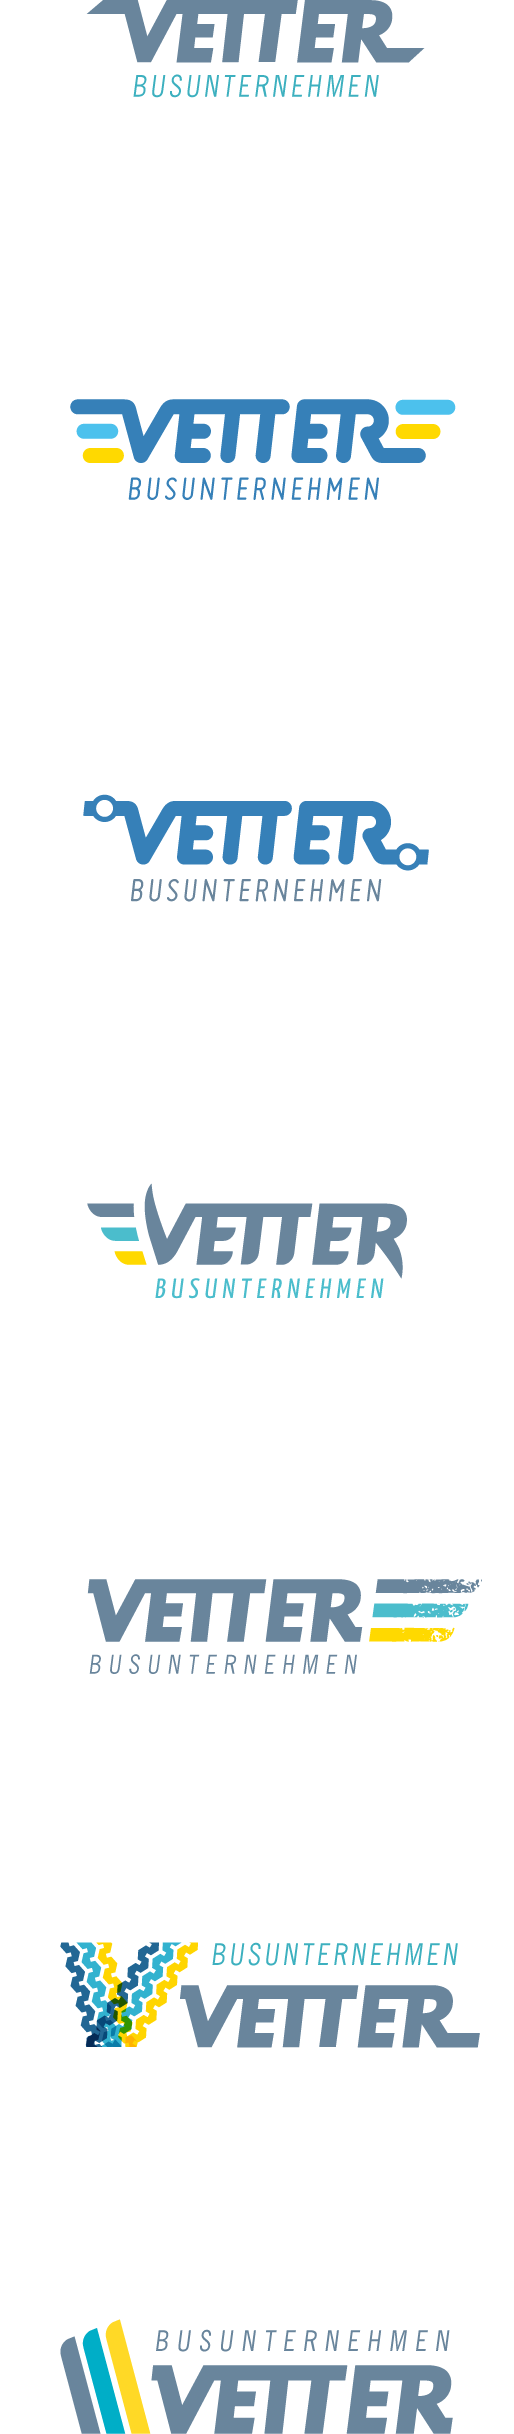 Vetter, other logo versions.